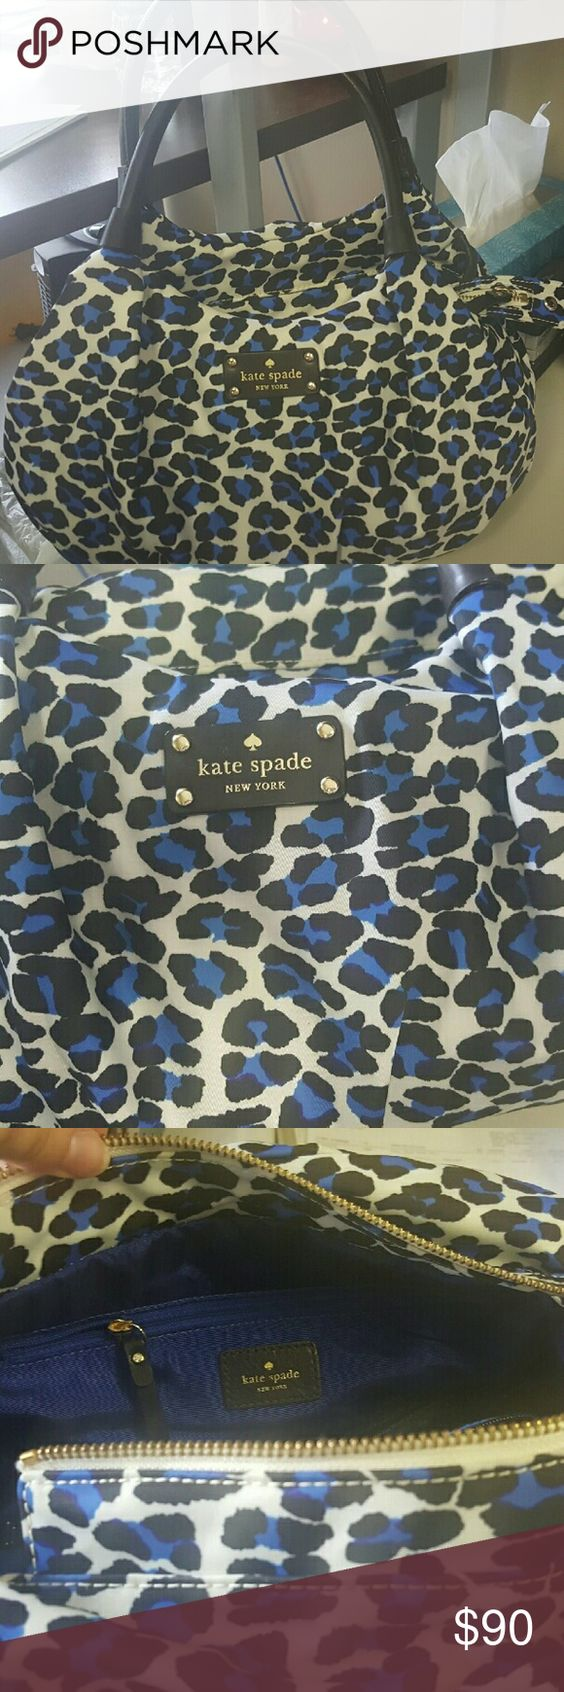 Kate Spade handbag New without tags..used once kate spade Bags Satchels